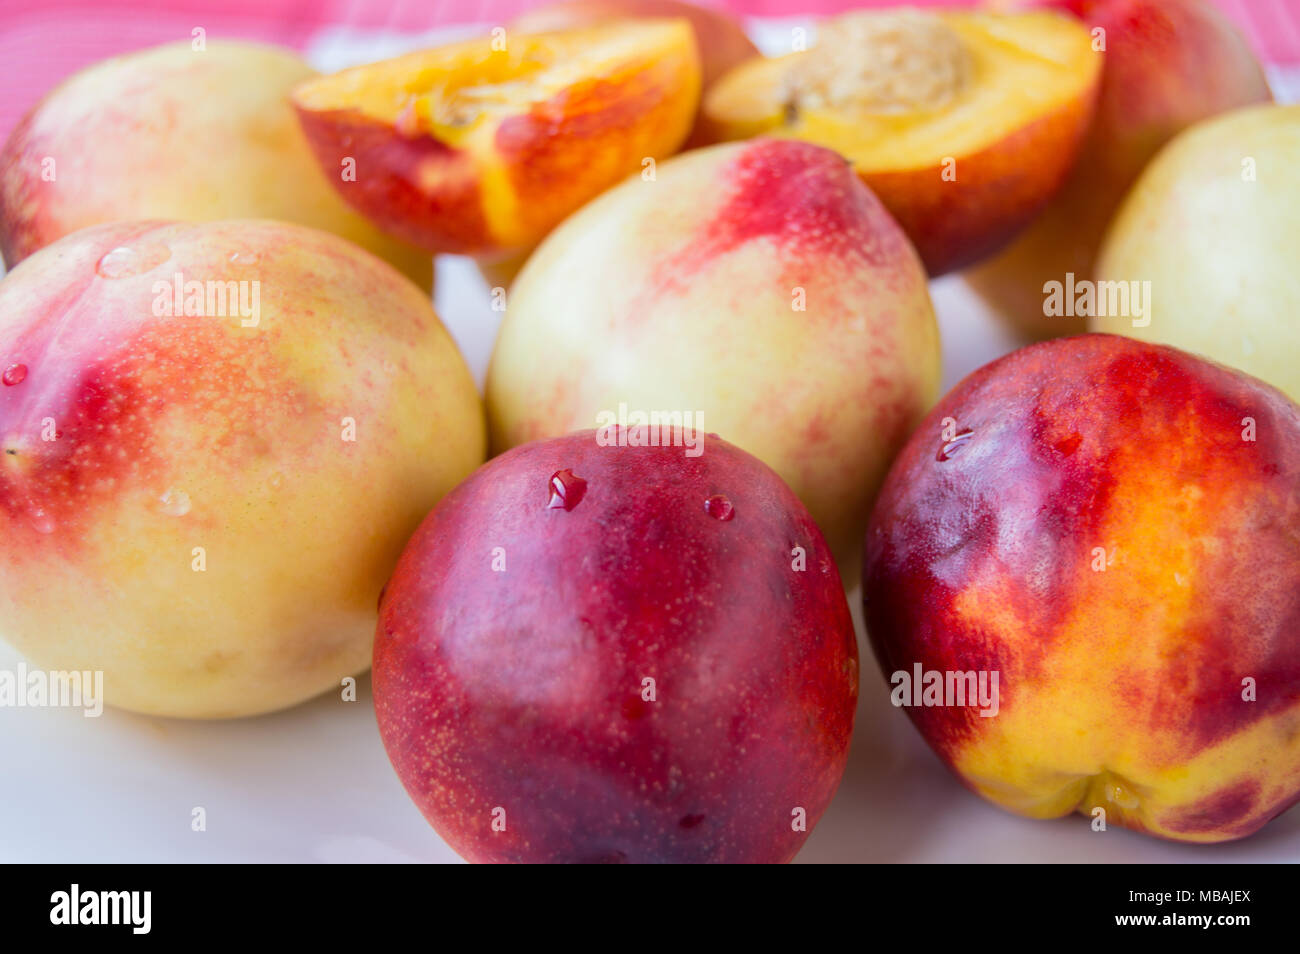 red ripe nectarine peaches with sliced selective focus - Stock Image